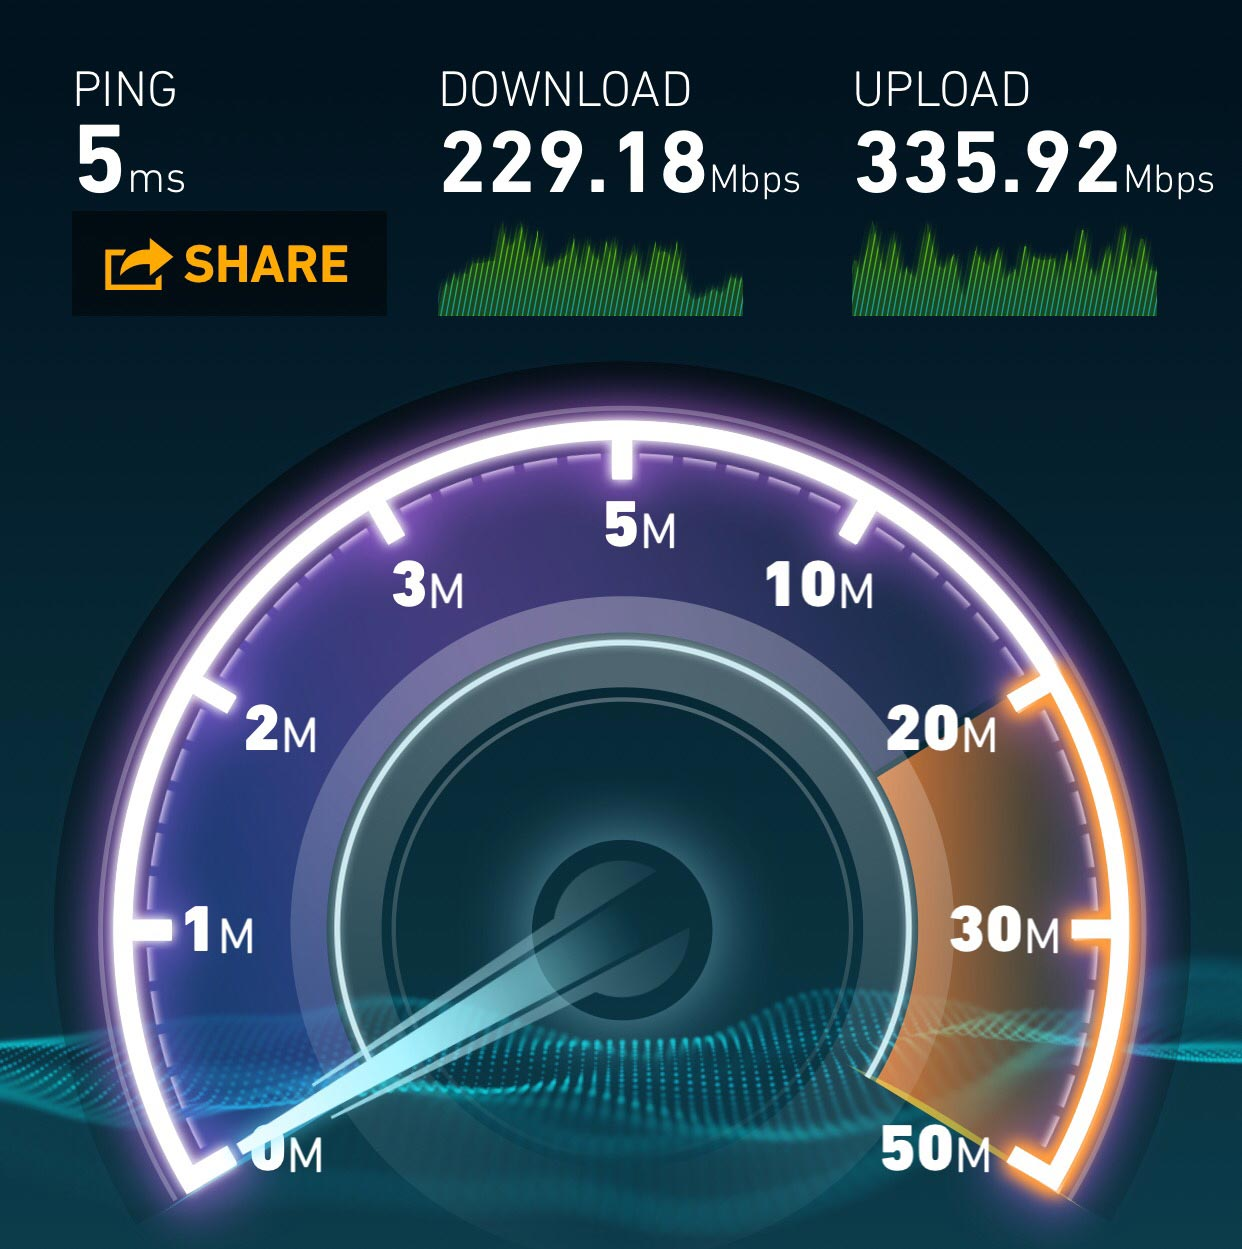 speed gauge showing internet speeds at bushitsu coworking space